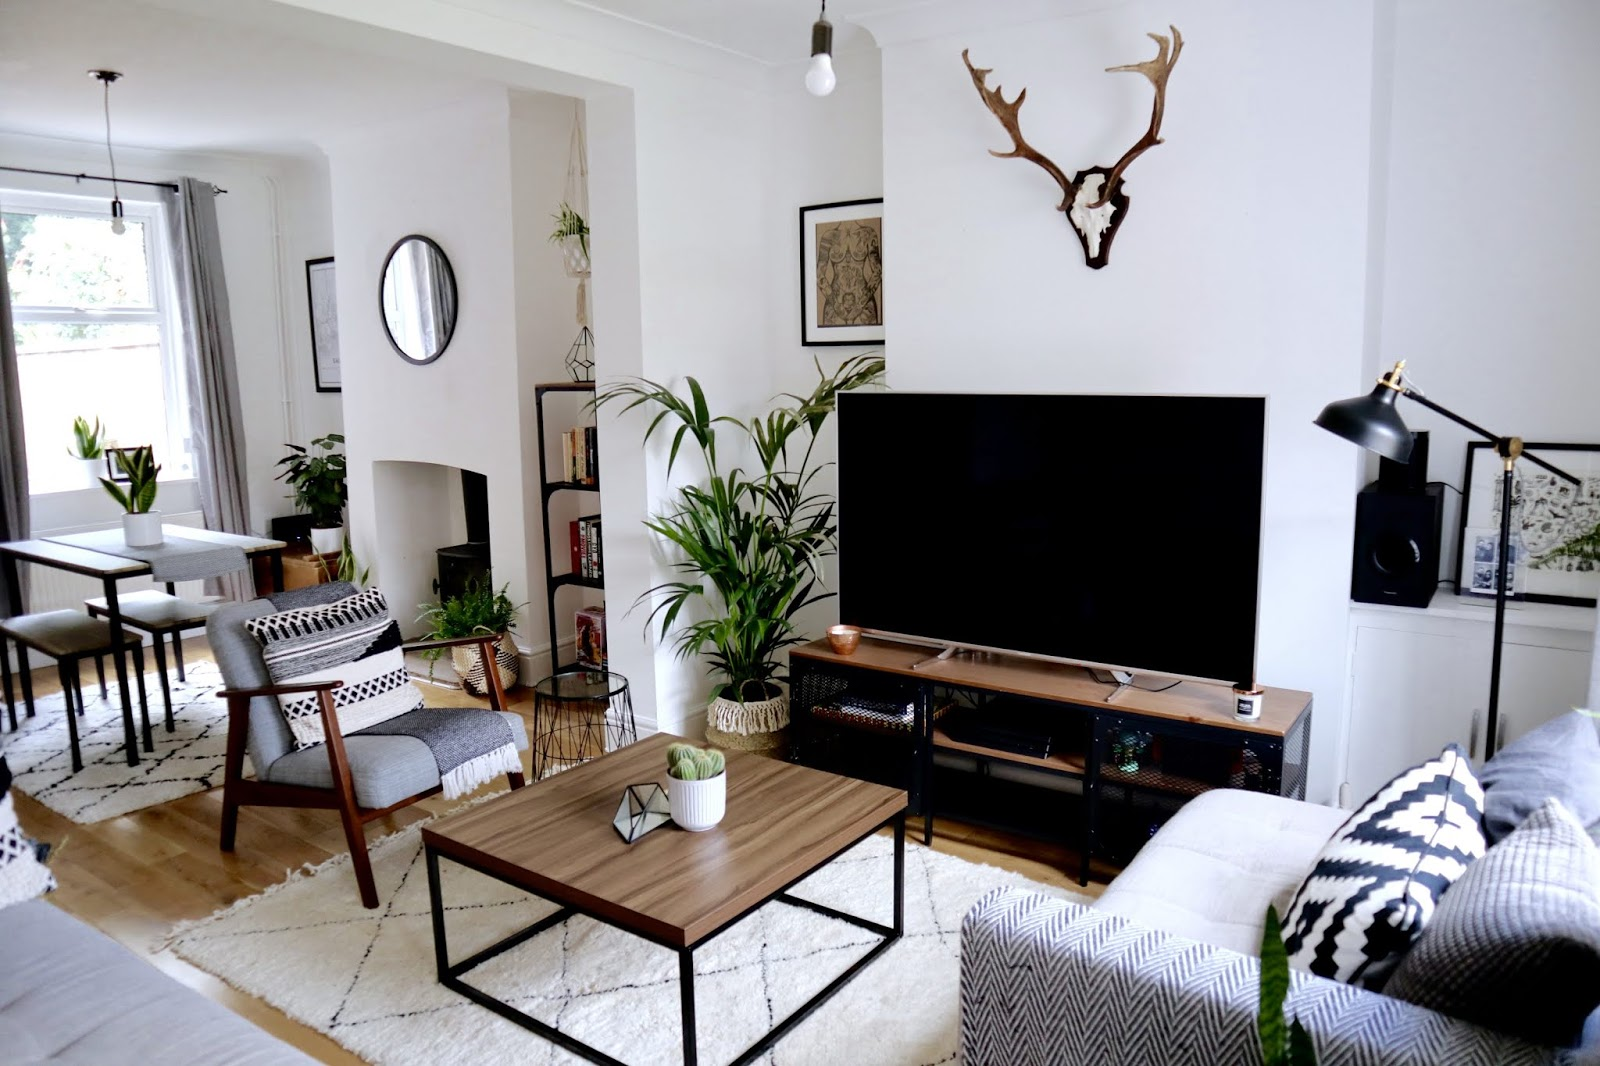 Lifestyle Review New Living Room Tour With Wayfair Co Uk